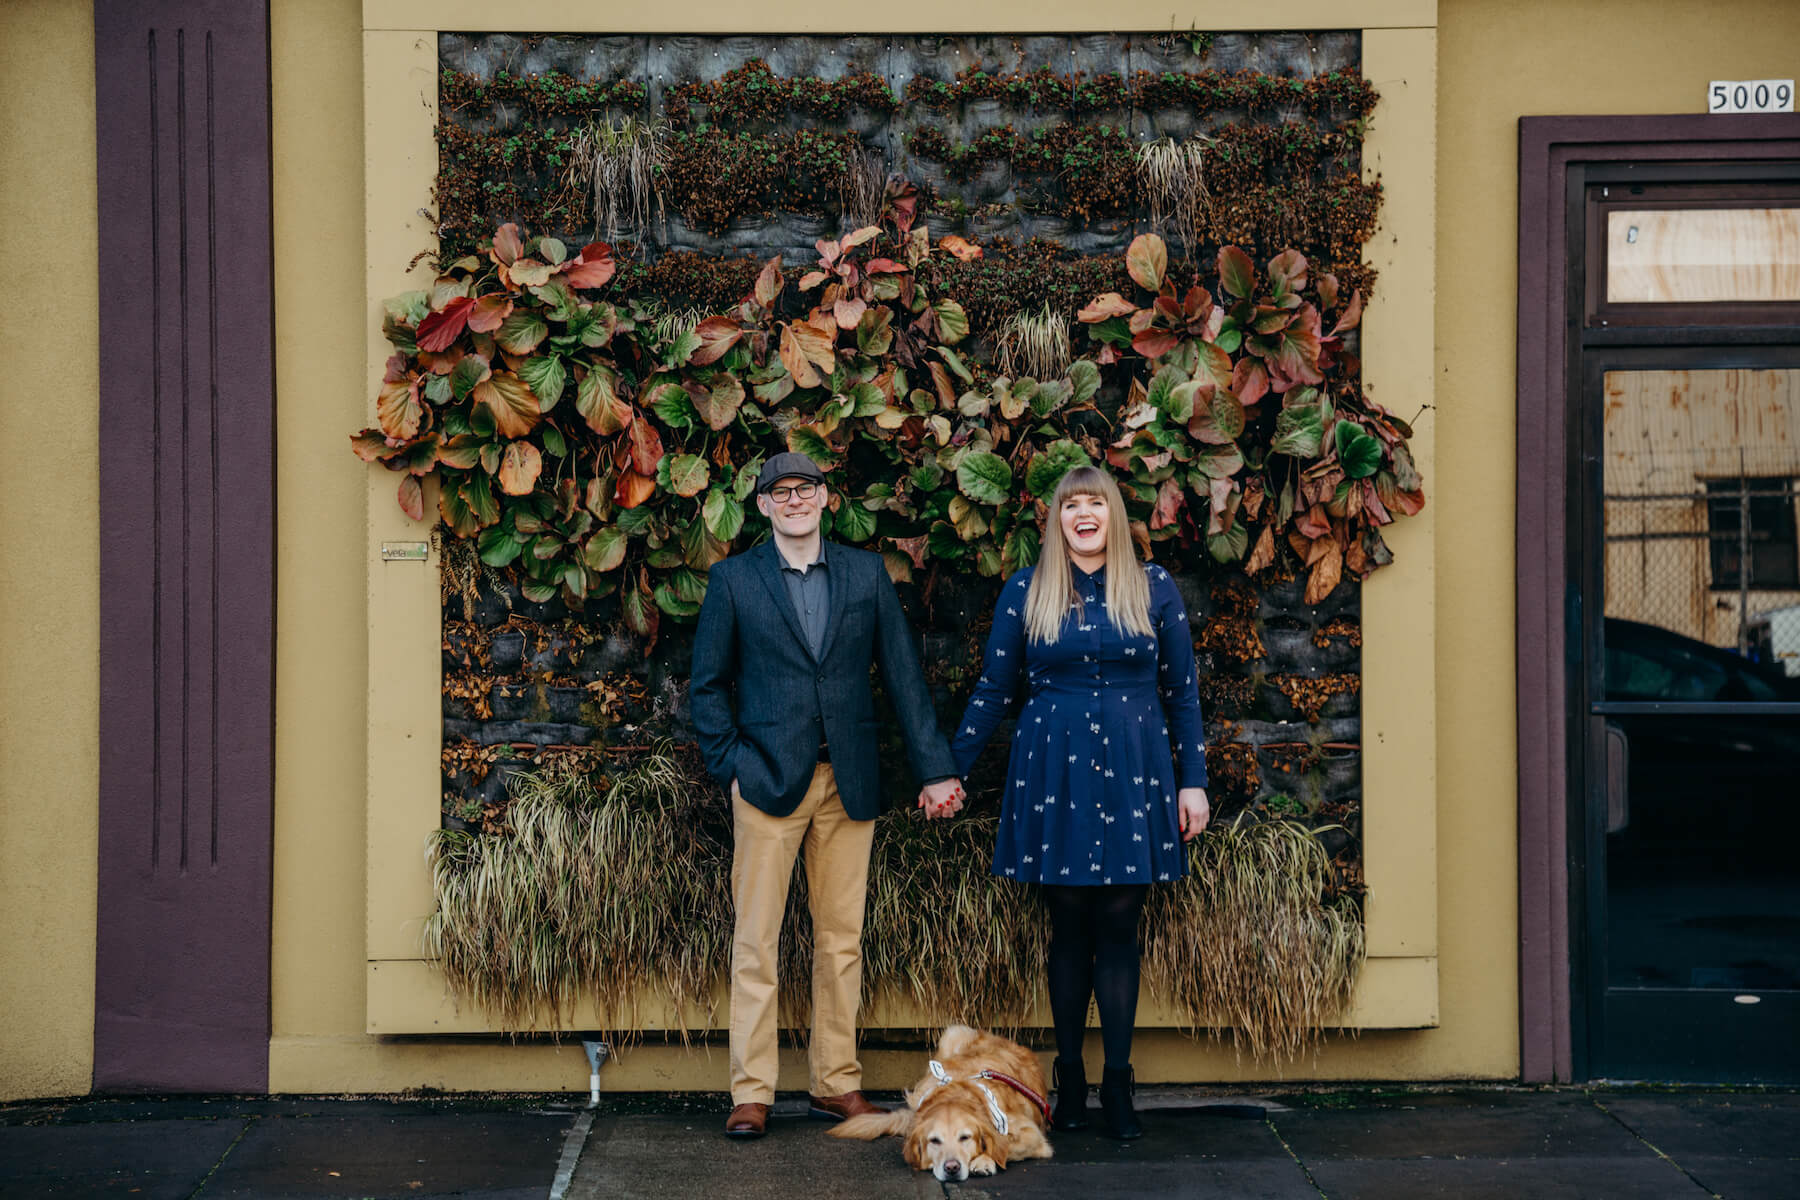 couple with a dog standing in front of a building in portland, Oregon